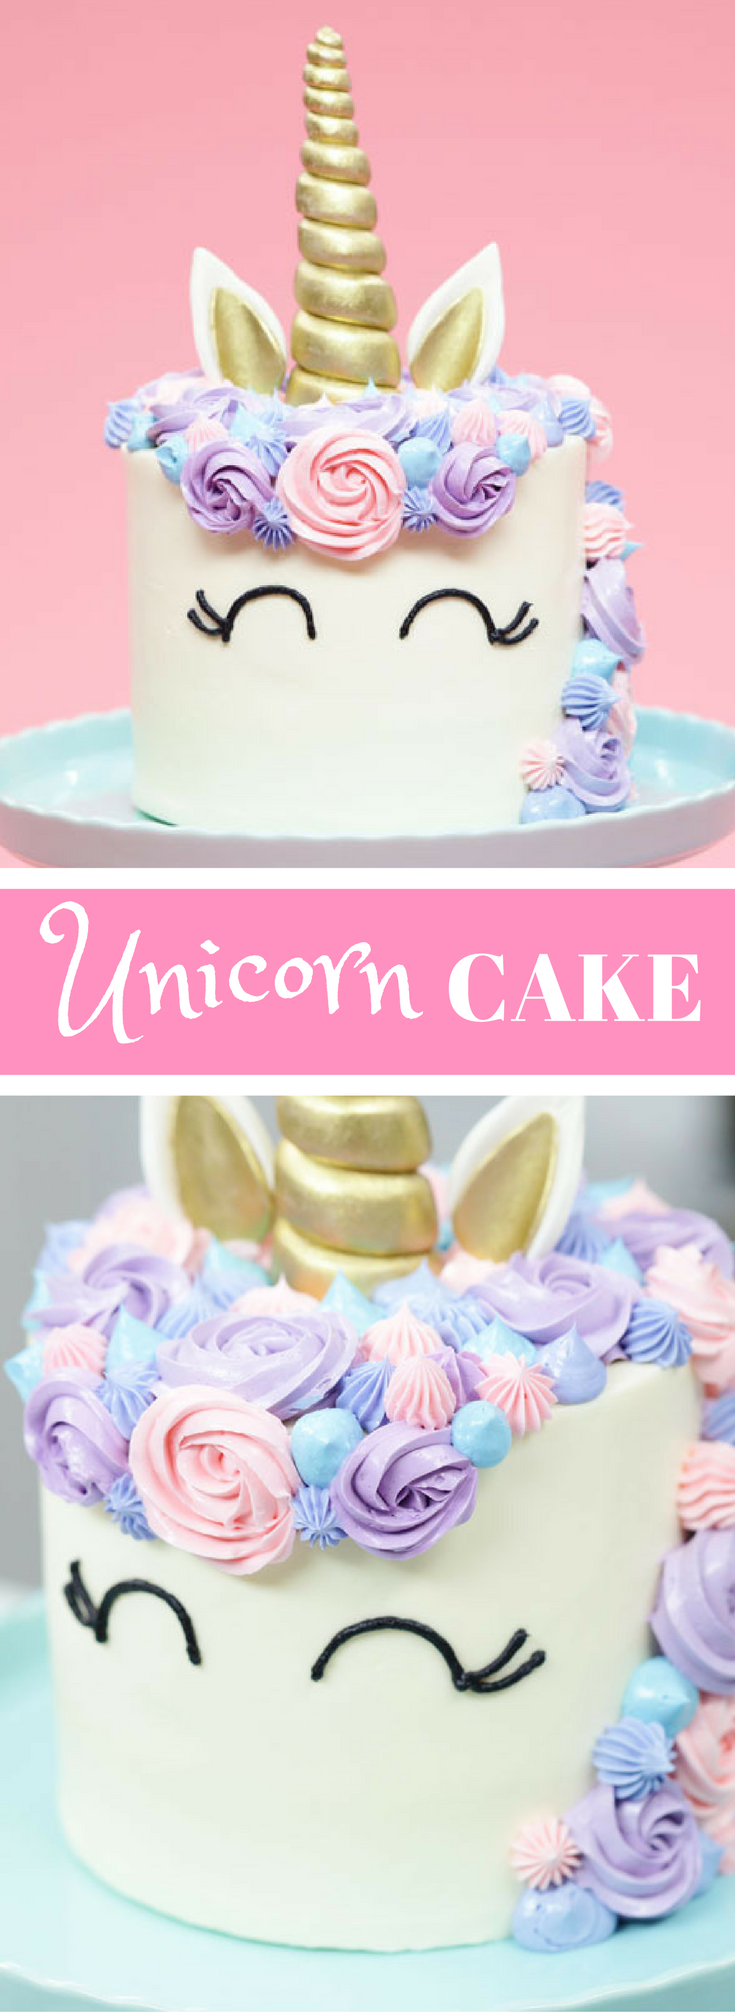 Instructions on how to make a unicorn cake